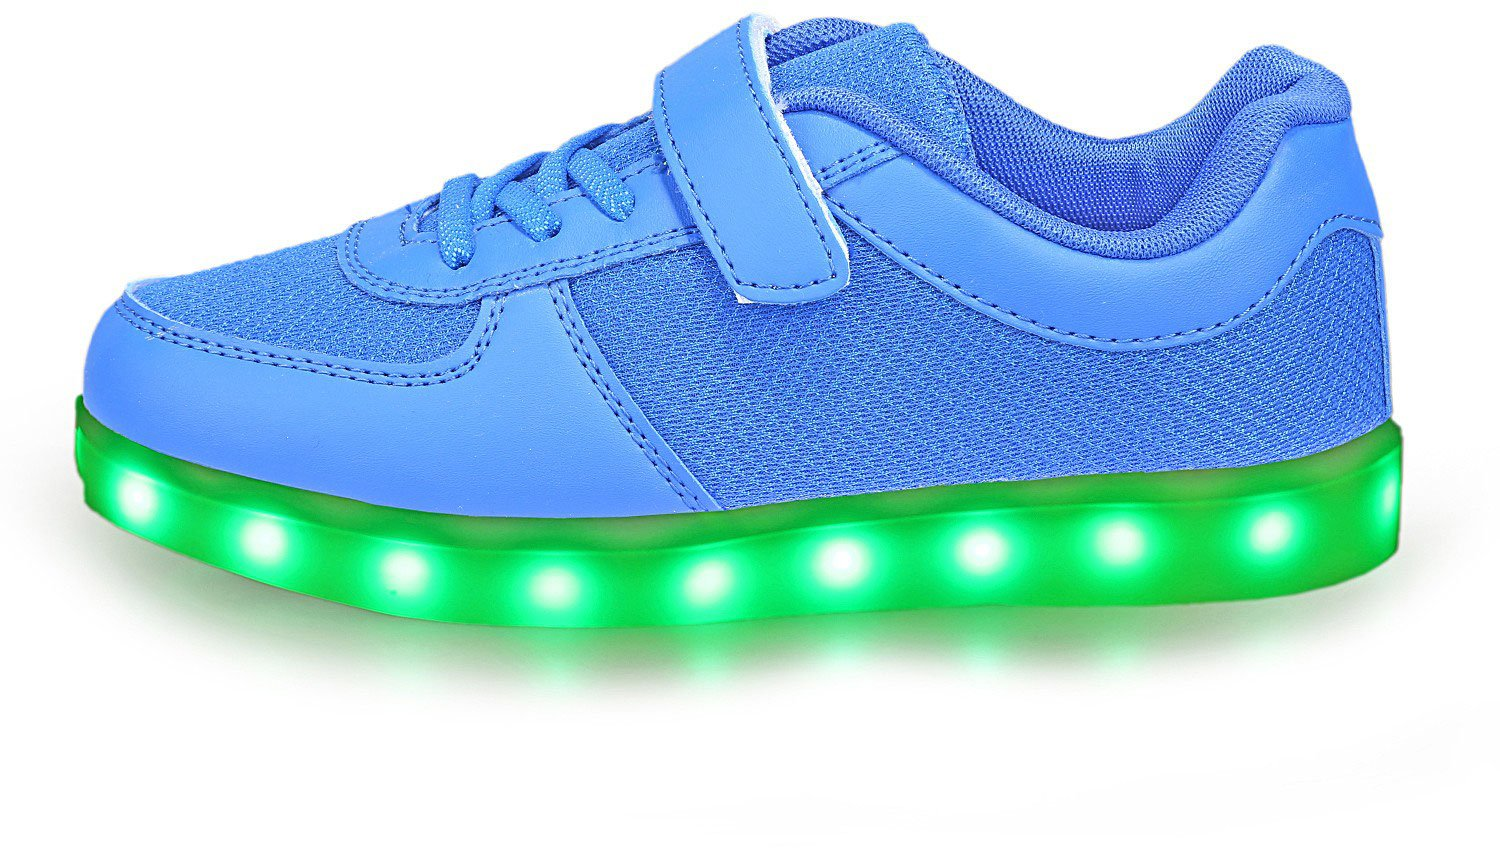 timeless design a6430 69d65 LED-Schuhe